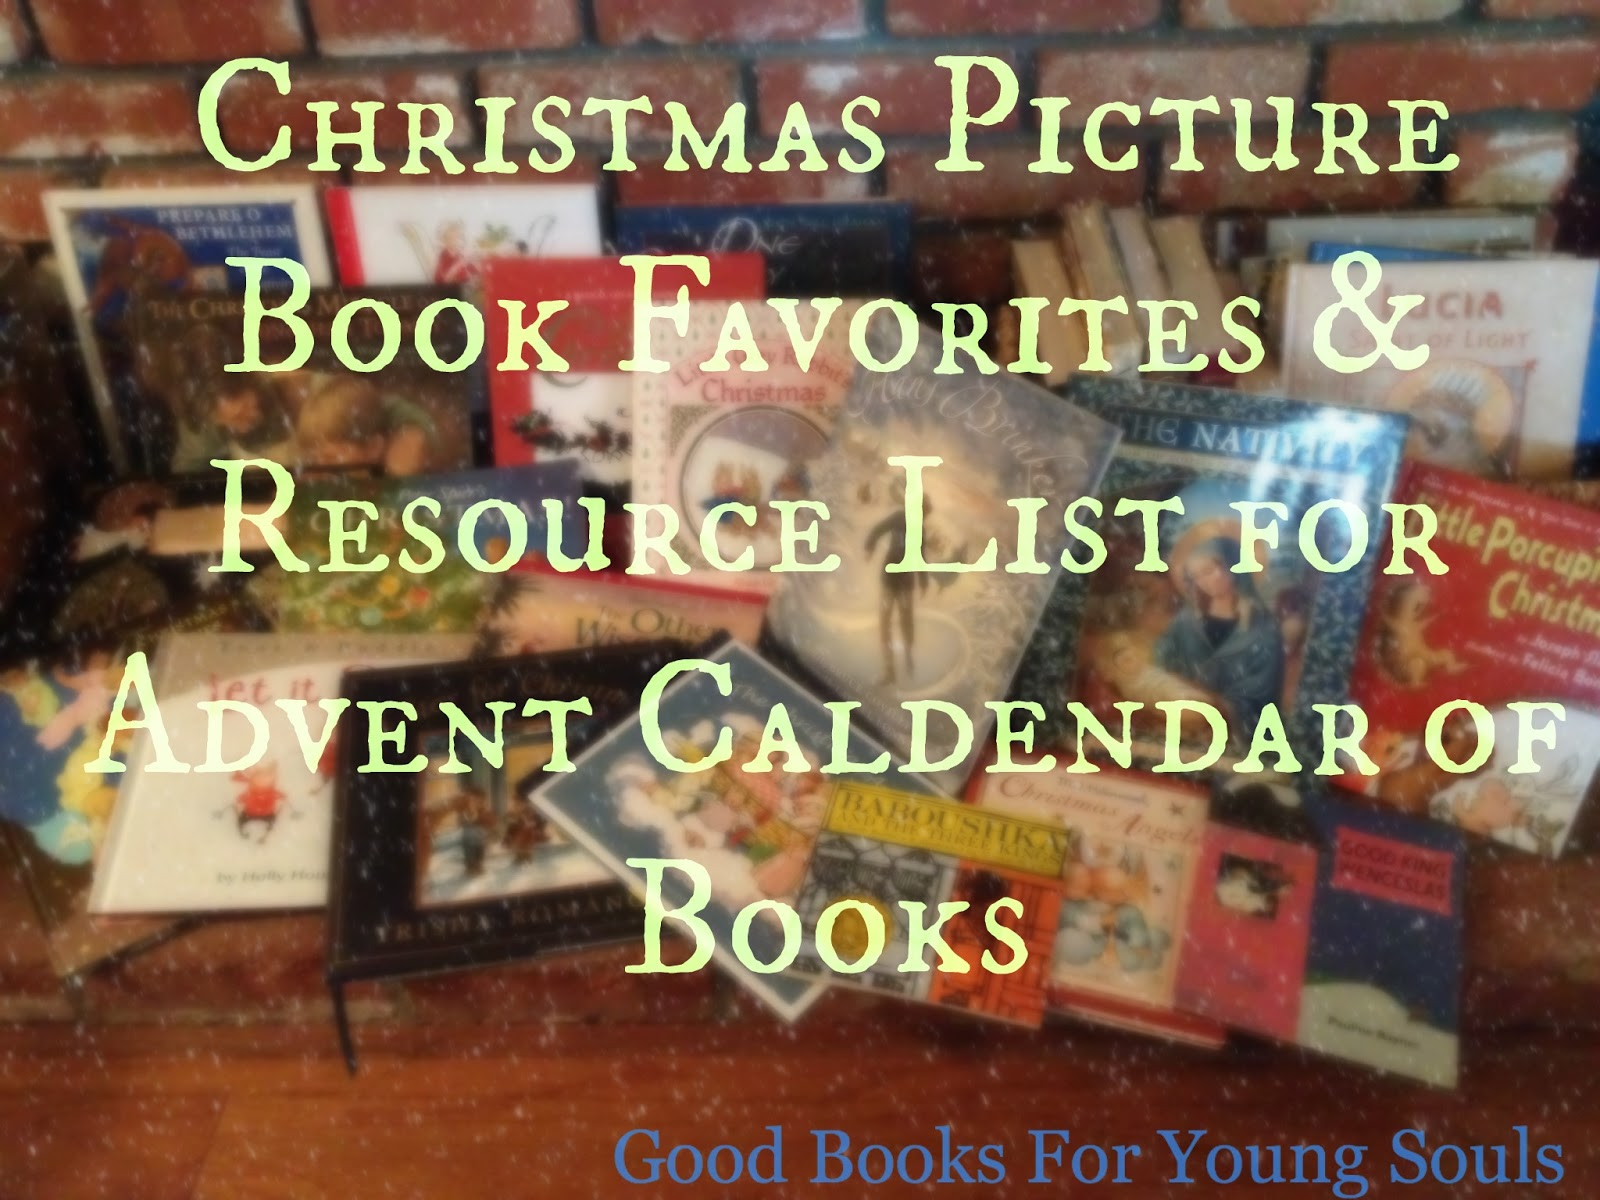 good books for young souls november 2011